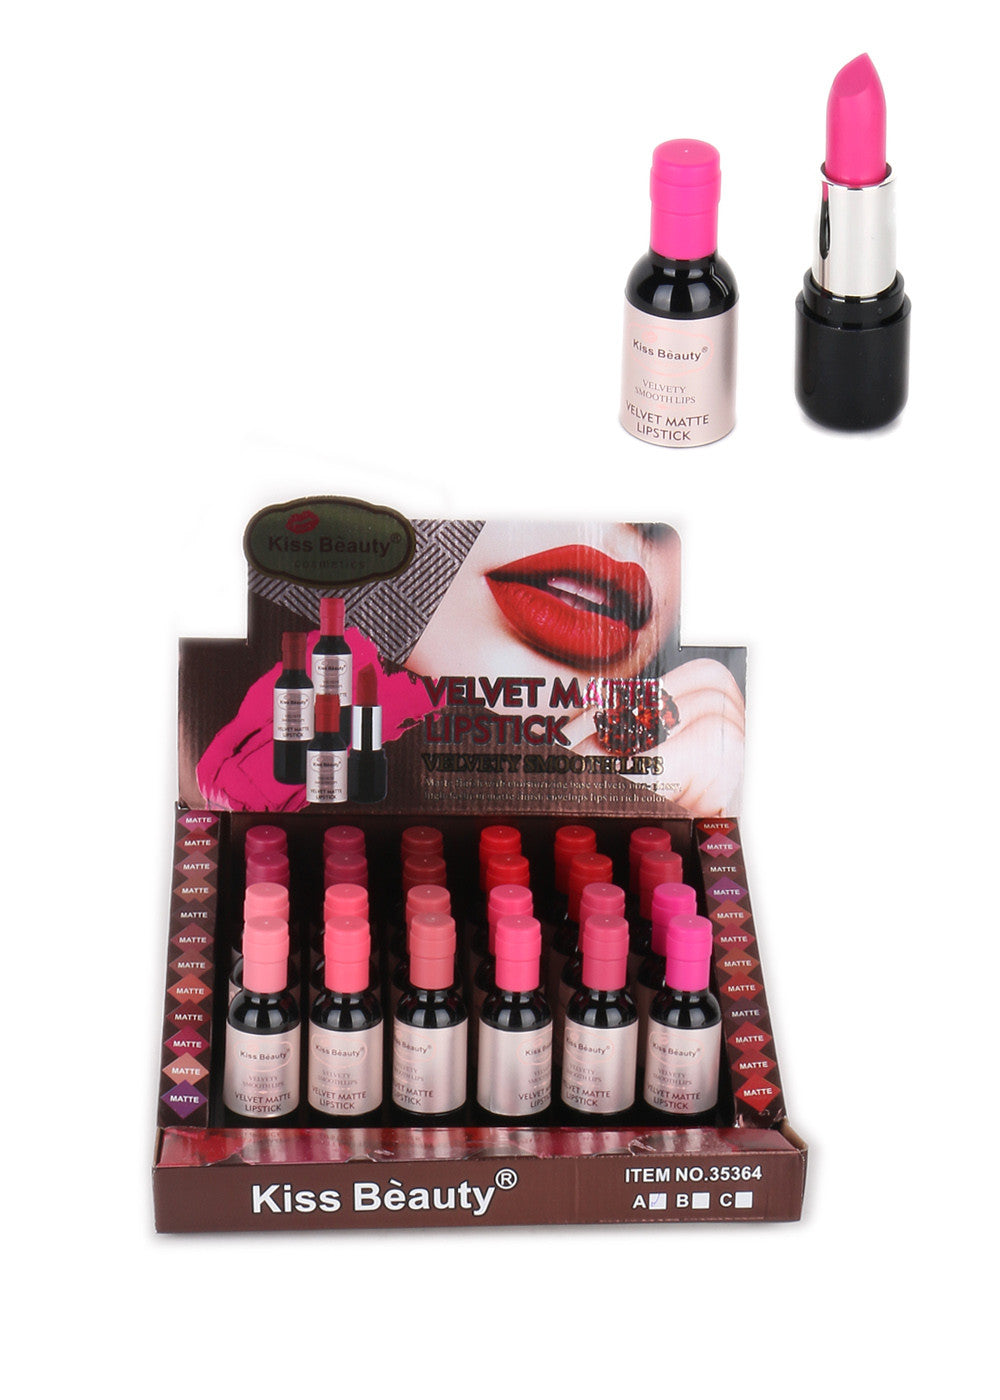 LT-570 : KISS BEAUTY Velvet Matte LIPSTICK ( 24 PC